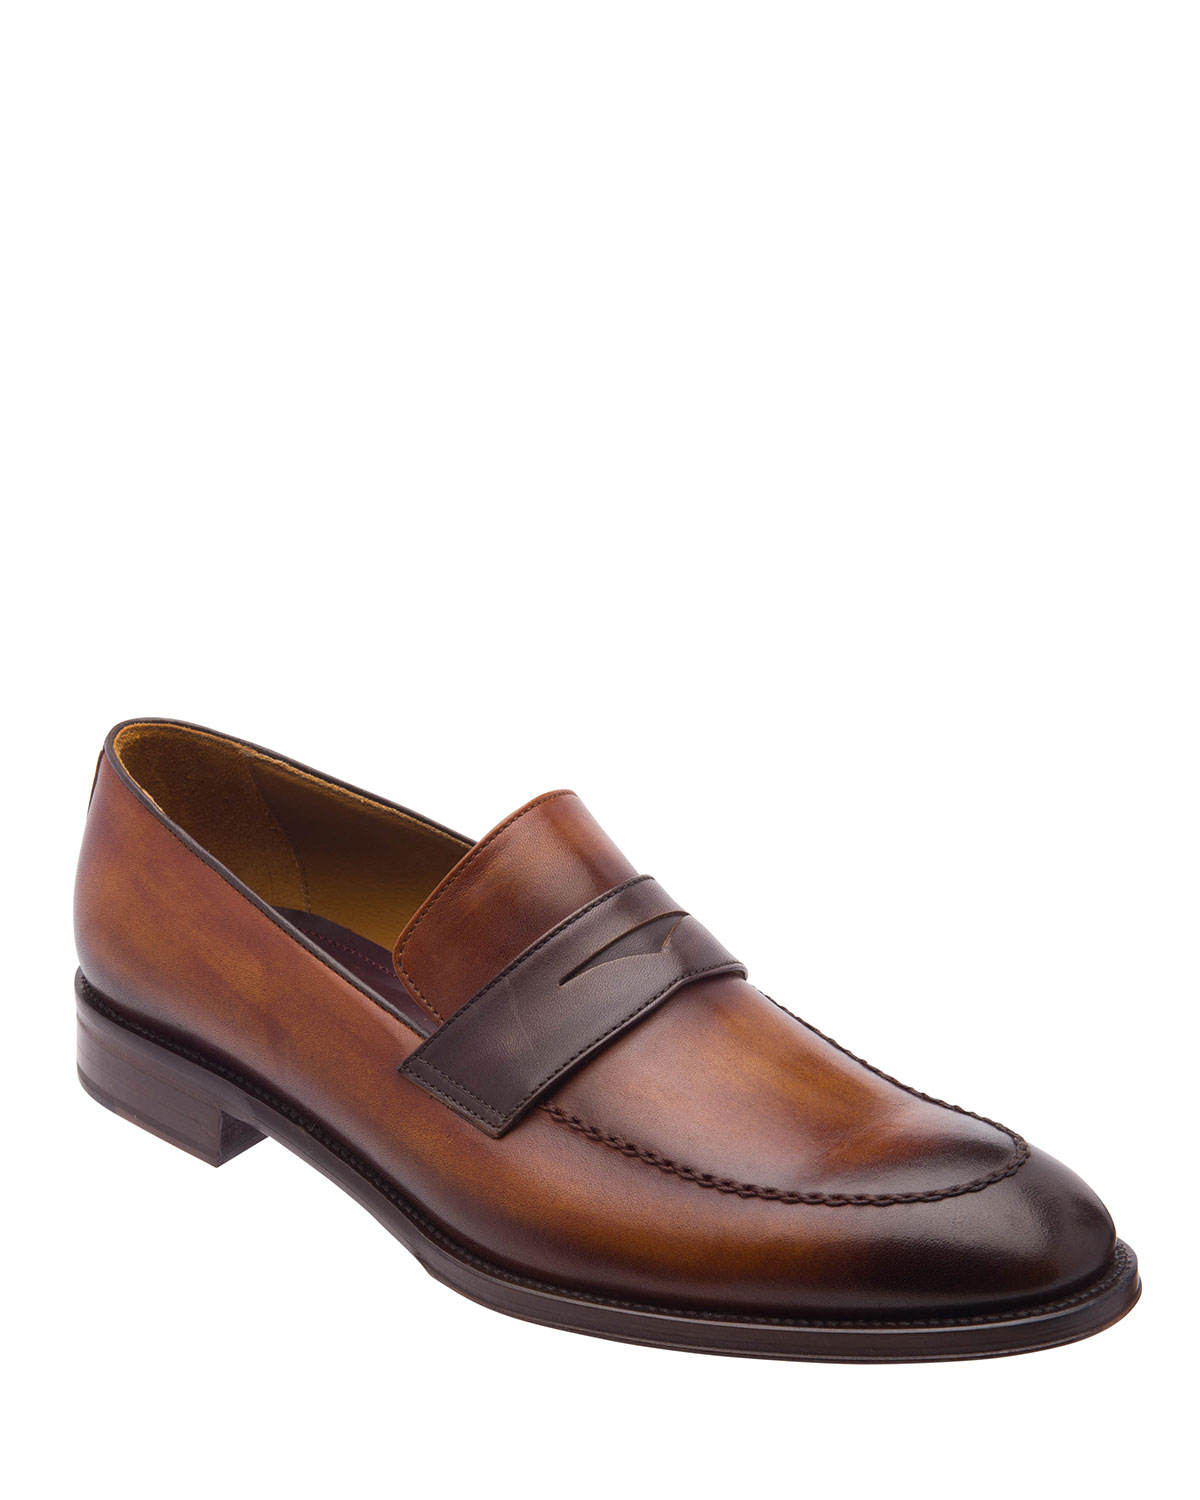 Bruno Magli Loafers MEN'S AREZZO BURNISHED LEATHER PENNY LOAFERS